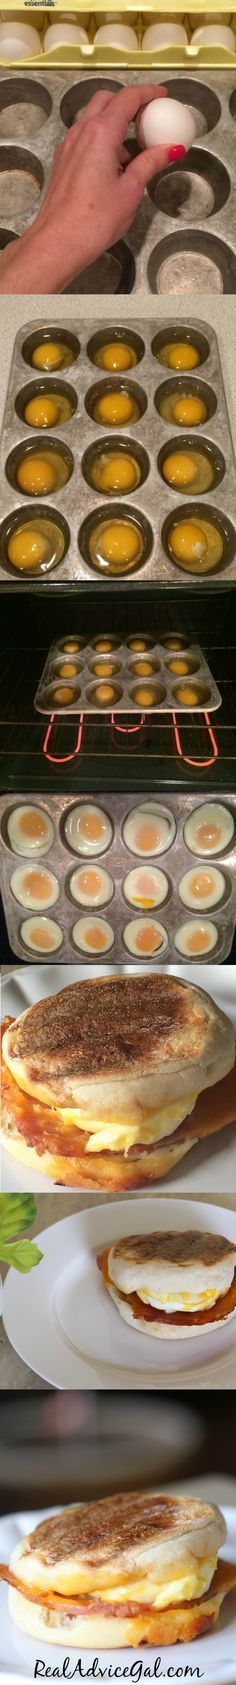 Make quick healthy breakfast for a crowd by cooking eggs in a muffin tin. Eggs are cooked to perfection and great for Egg McMuffins.